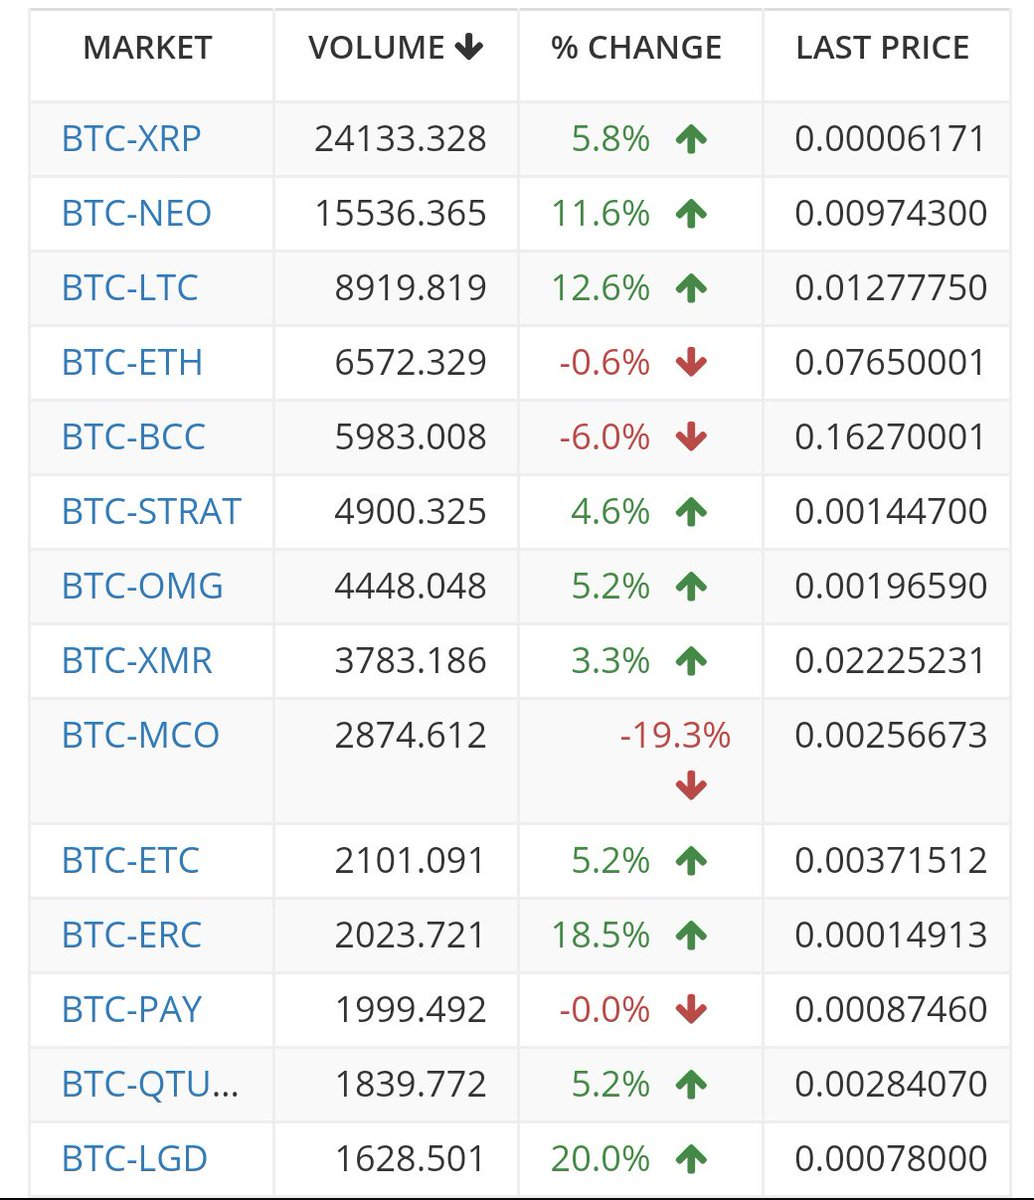 Volume on these #alts are amazingbuy at these levels $xrp $neo $ltc $eth $qtum #btc #neo #ltc #technology #tech #invest #volume #buy  $bat<br>http://pic.twitter.com/5SLblQ1itG